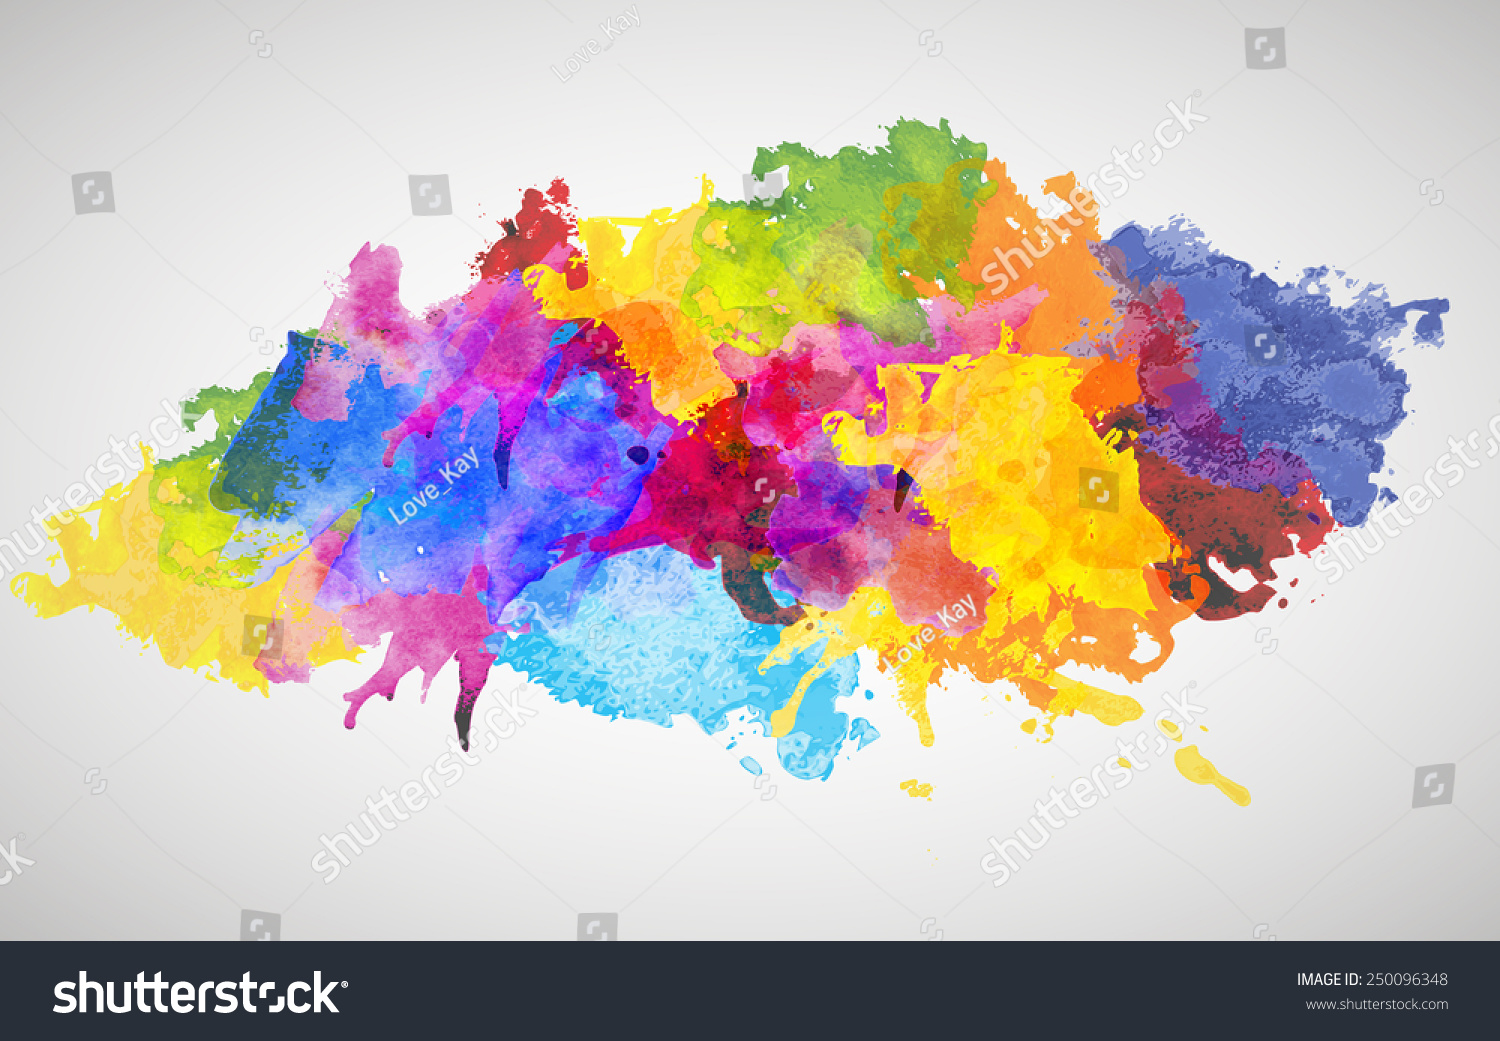 Colorful watercolor splash ~ Abstract Photos on Creative ...  Colorful Watercolor Splash